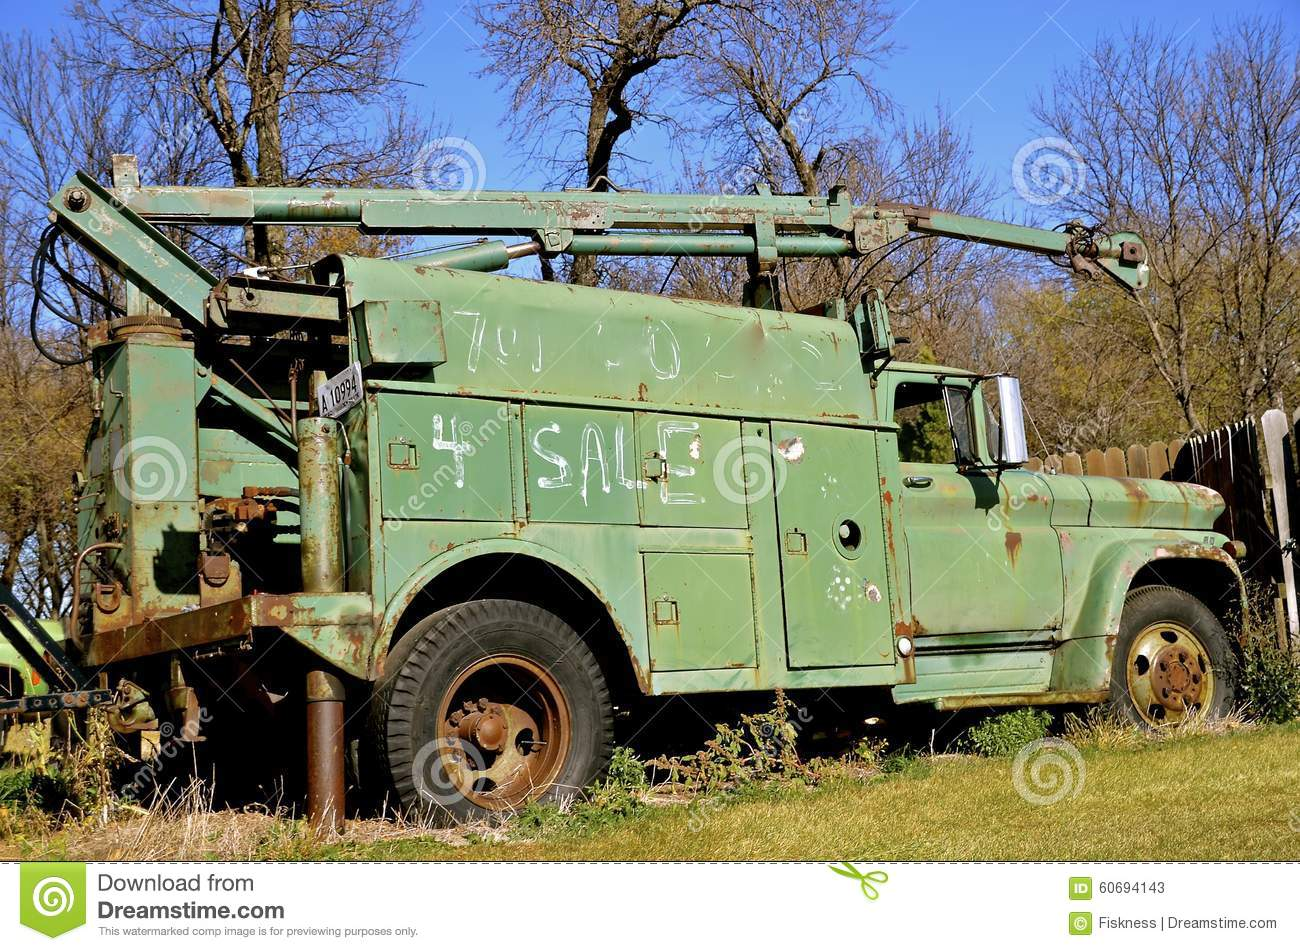 Abandoned Old Utility Truck Stock Image - Image of rusty, wench ...